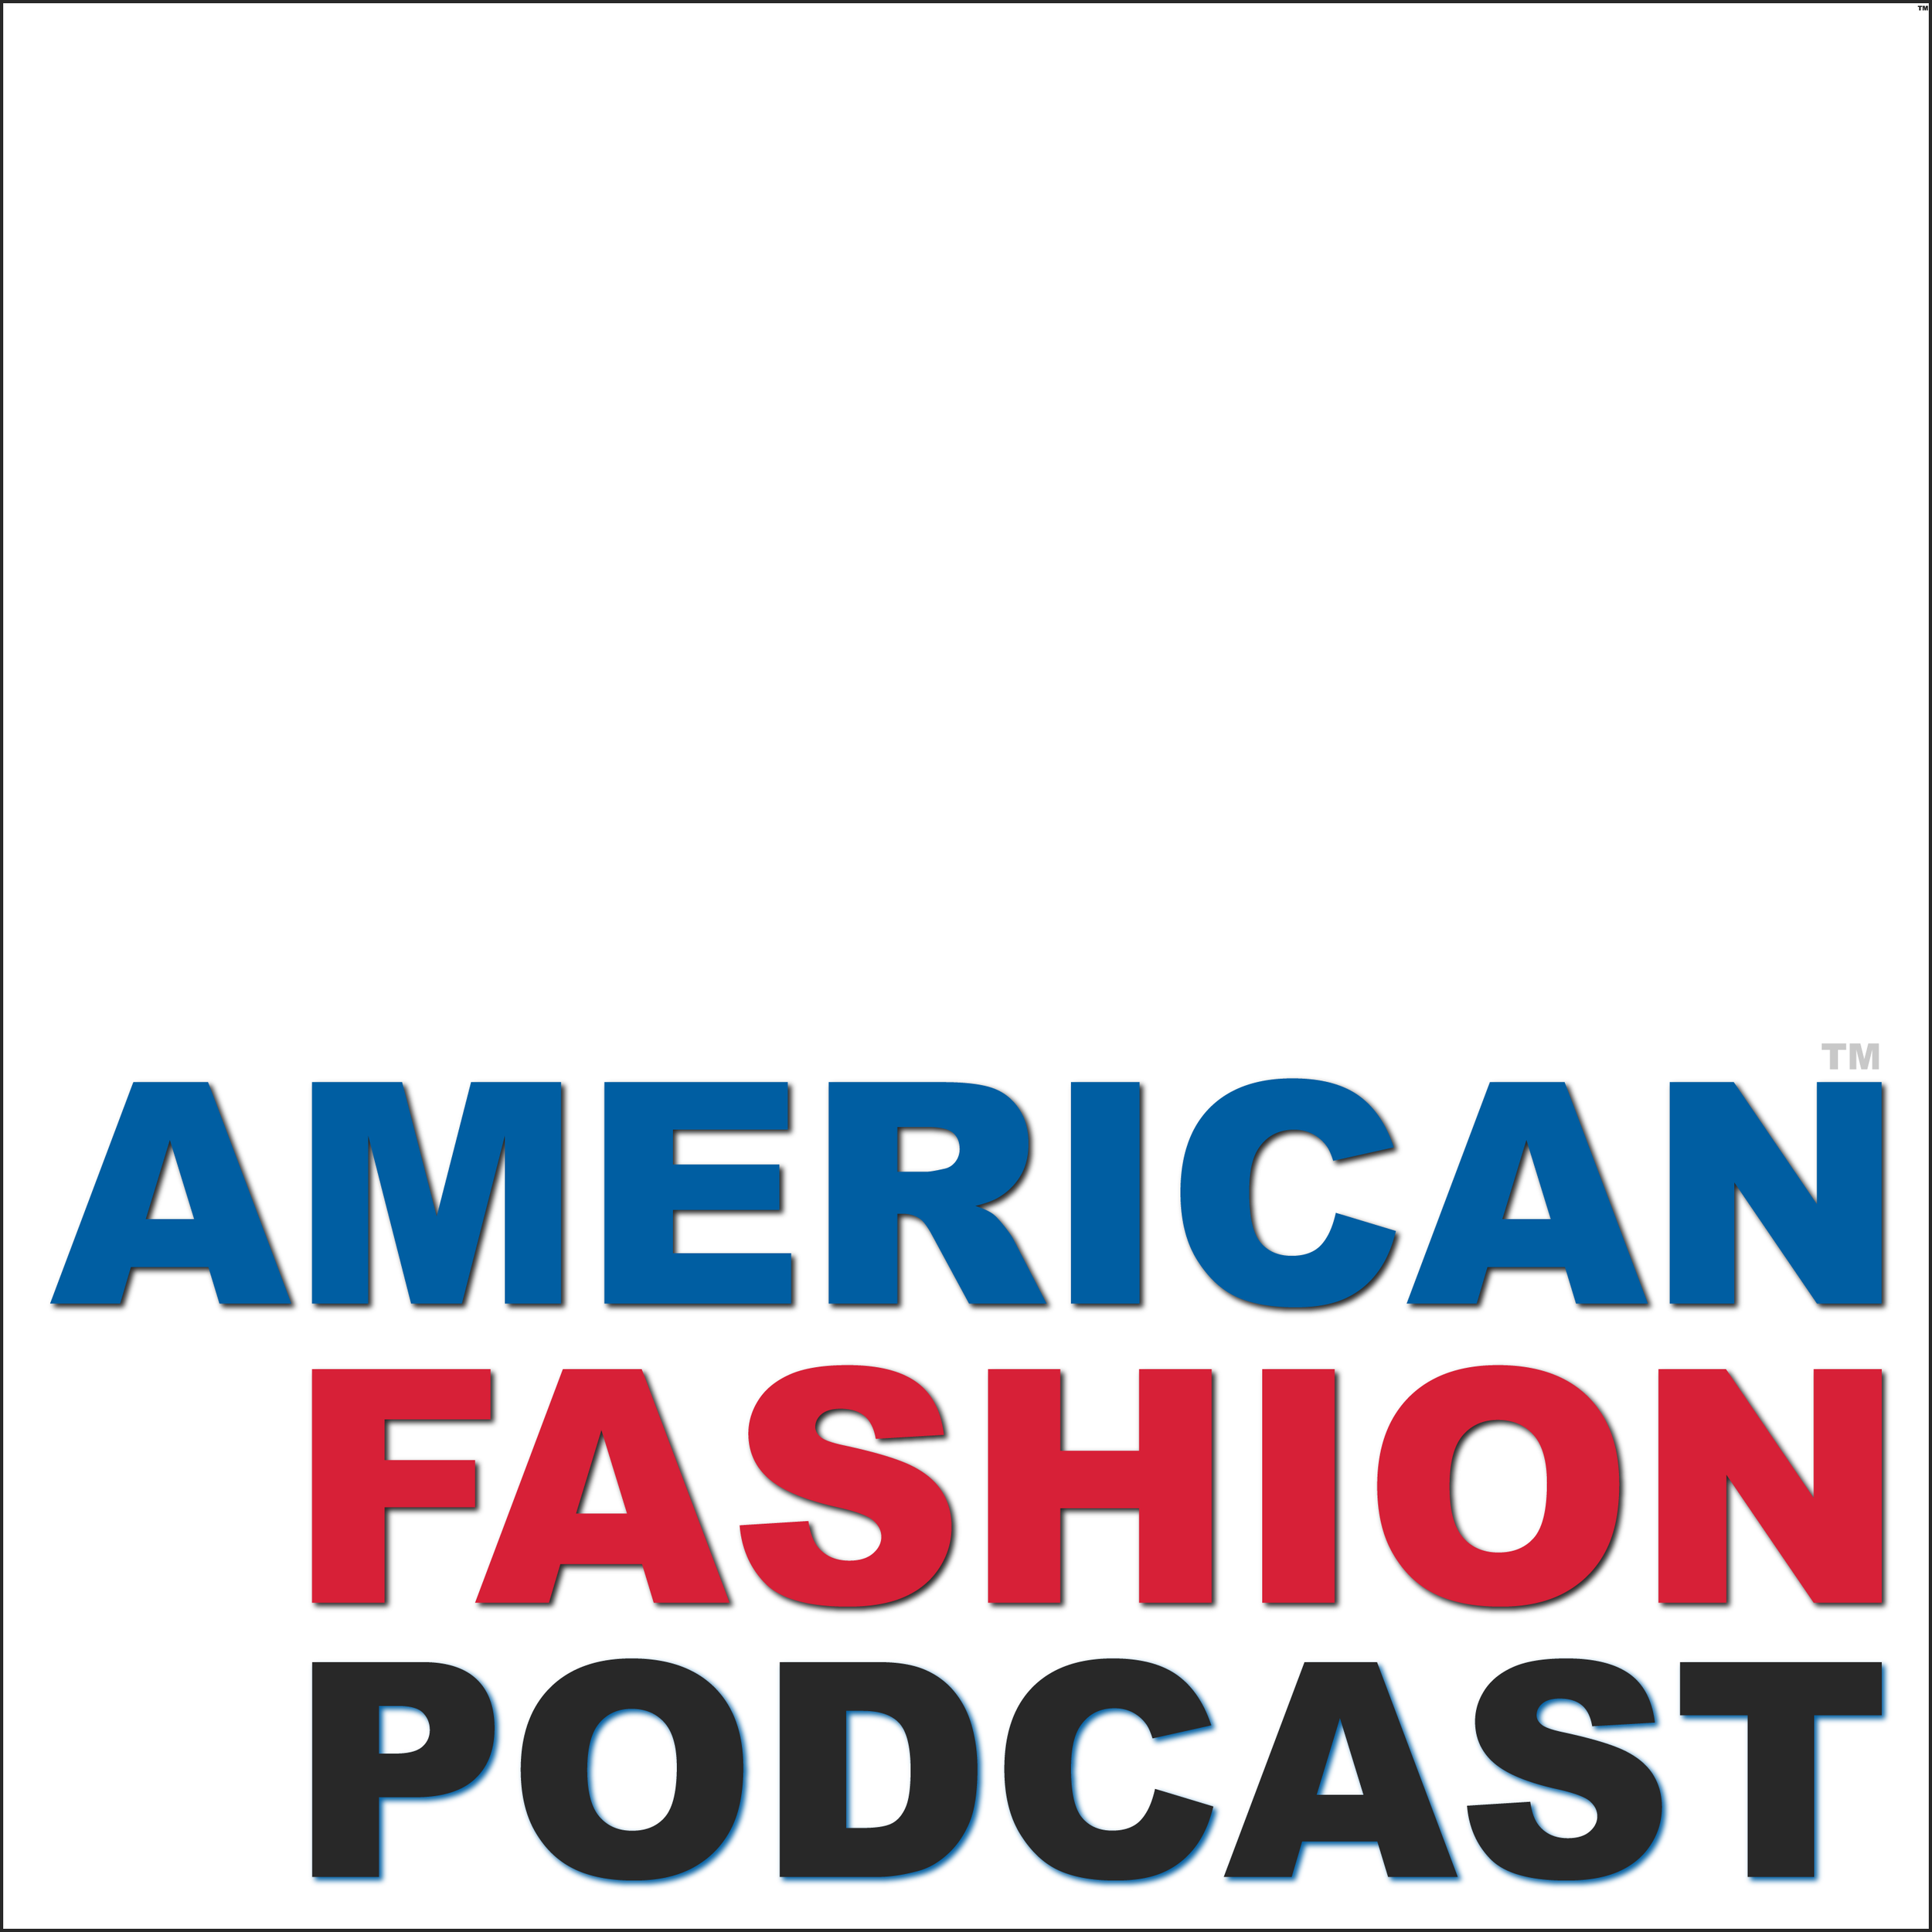 "American Fashion Podcast - American Fashion Podcast is the leading fashion industry podcast, followed by thousands of industry insiders each week.""The fashion industry's favorite show"" is hosted by ""@FashionTechGuru"" Charles Beckwith and veteran fashion business executive Cathy Schepis. American Fashion Podcast's weekly deep dive interviews with people at all levels of the business focus on stories about how the fashion industry functions, dysfunctions, and is evolving.Prominent guests have included Donna Karan, Naeem Khan, Ralph Rucci, Norma Kamali, threeASFOUR, Simon Collins, Lauren Sherman, Gary Wassner, Jeff Staple, Anita Dongre, Dana Thomas, Rebecca Minkoff, Teri Agins, Nick Graham, Austin Scarlet, Babi Ahluwalia, Domenico Vacca, Bayard Winthrop, Trina Turk, Ann Roth, Daniel Vosovic, Mickey Boardman, Julie Zerbo, Tim Gunn, and many more."